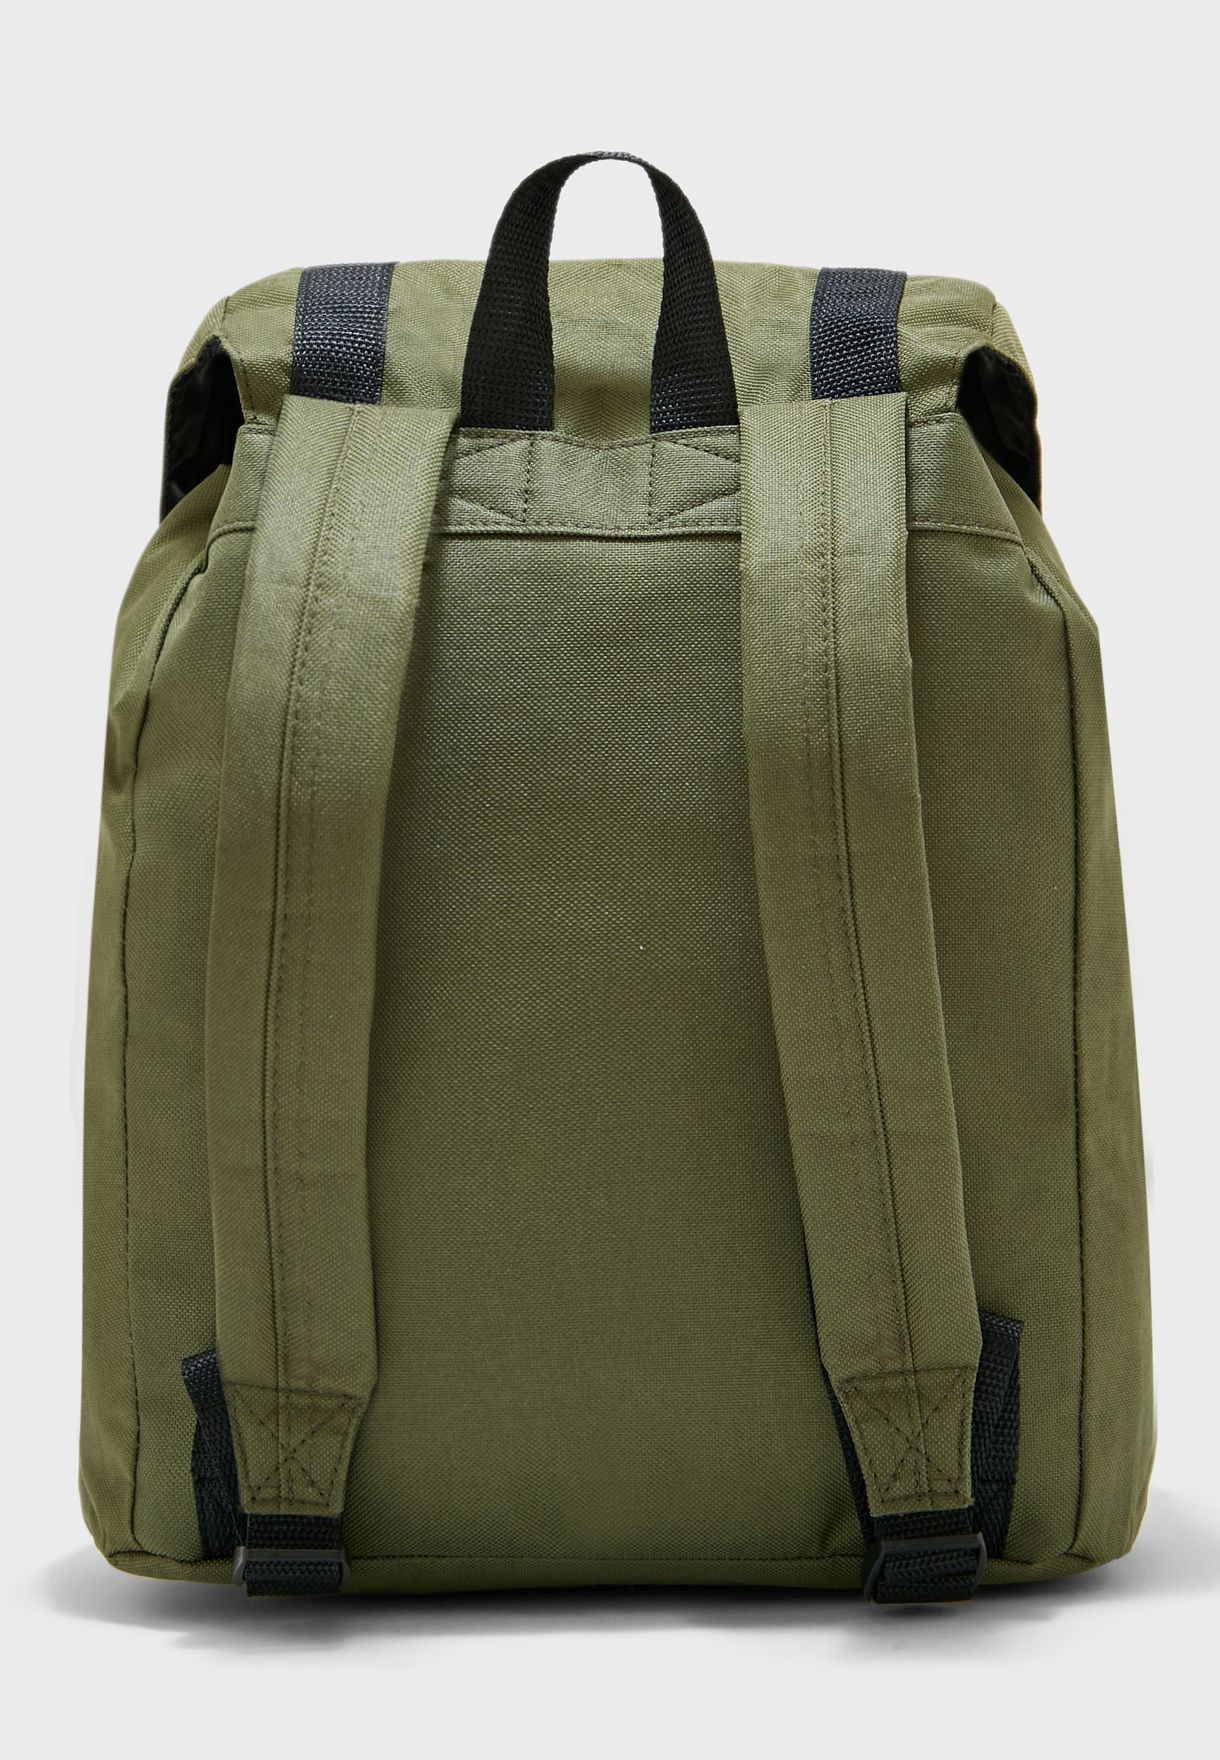 Trek Backpack With Double Strap Fastening